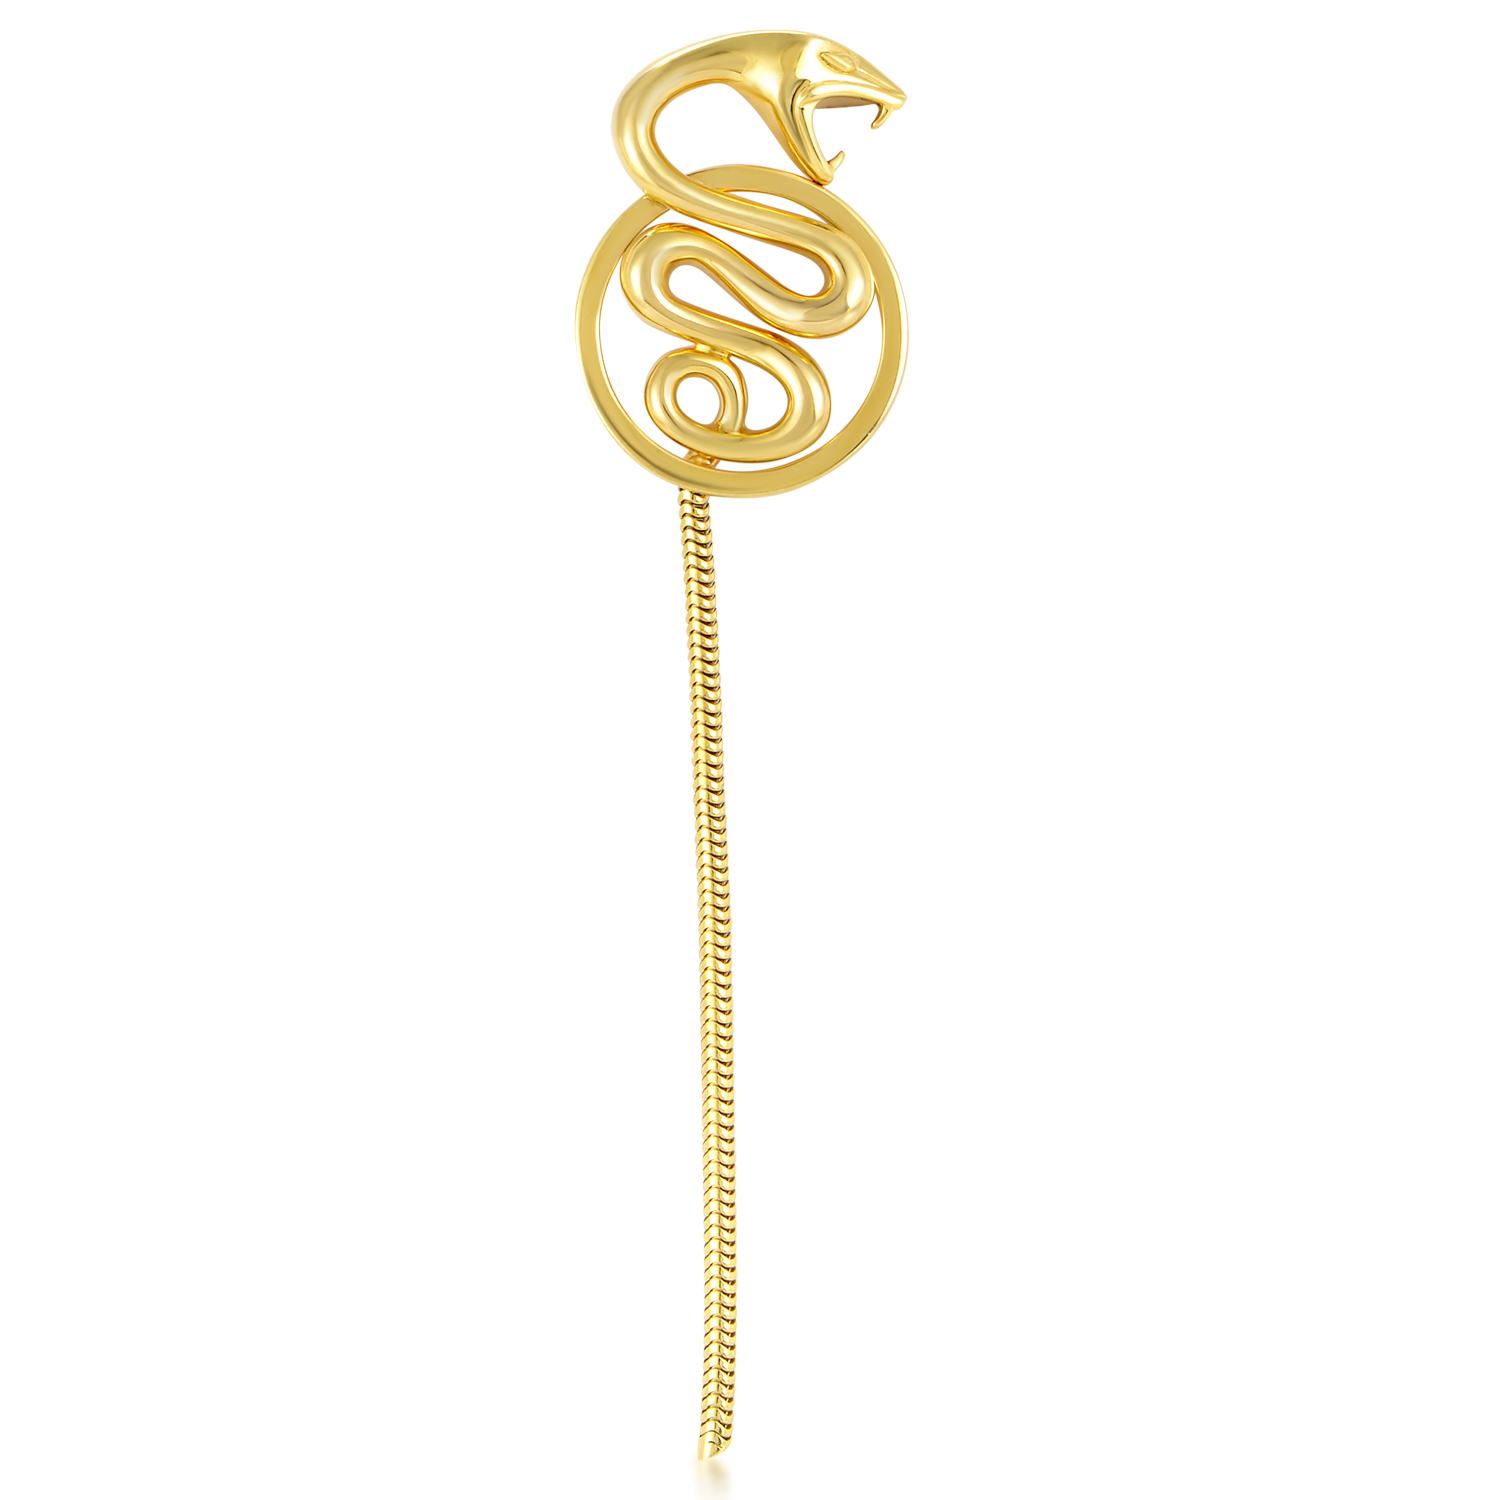 Boucheron Women's 18K Yellow Gold Long Tail Snake Pendant